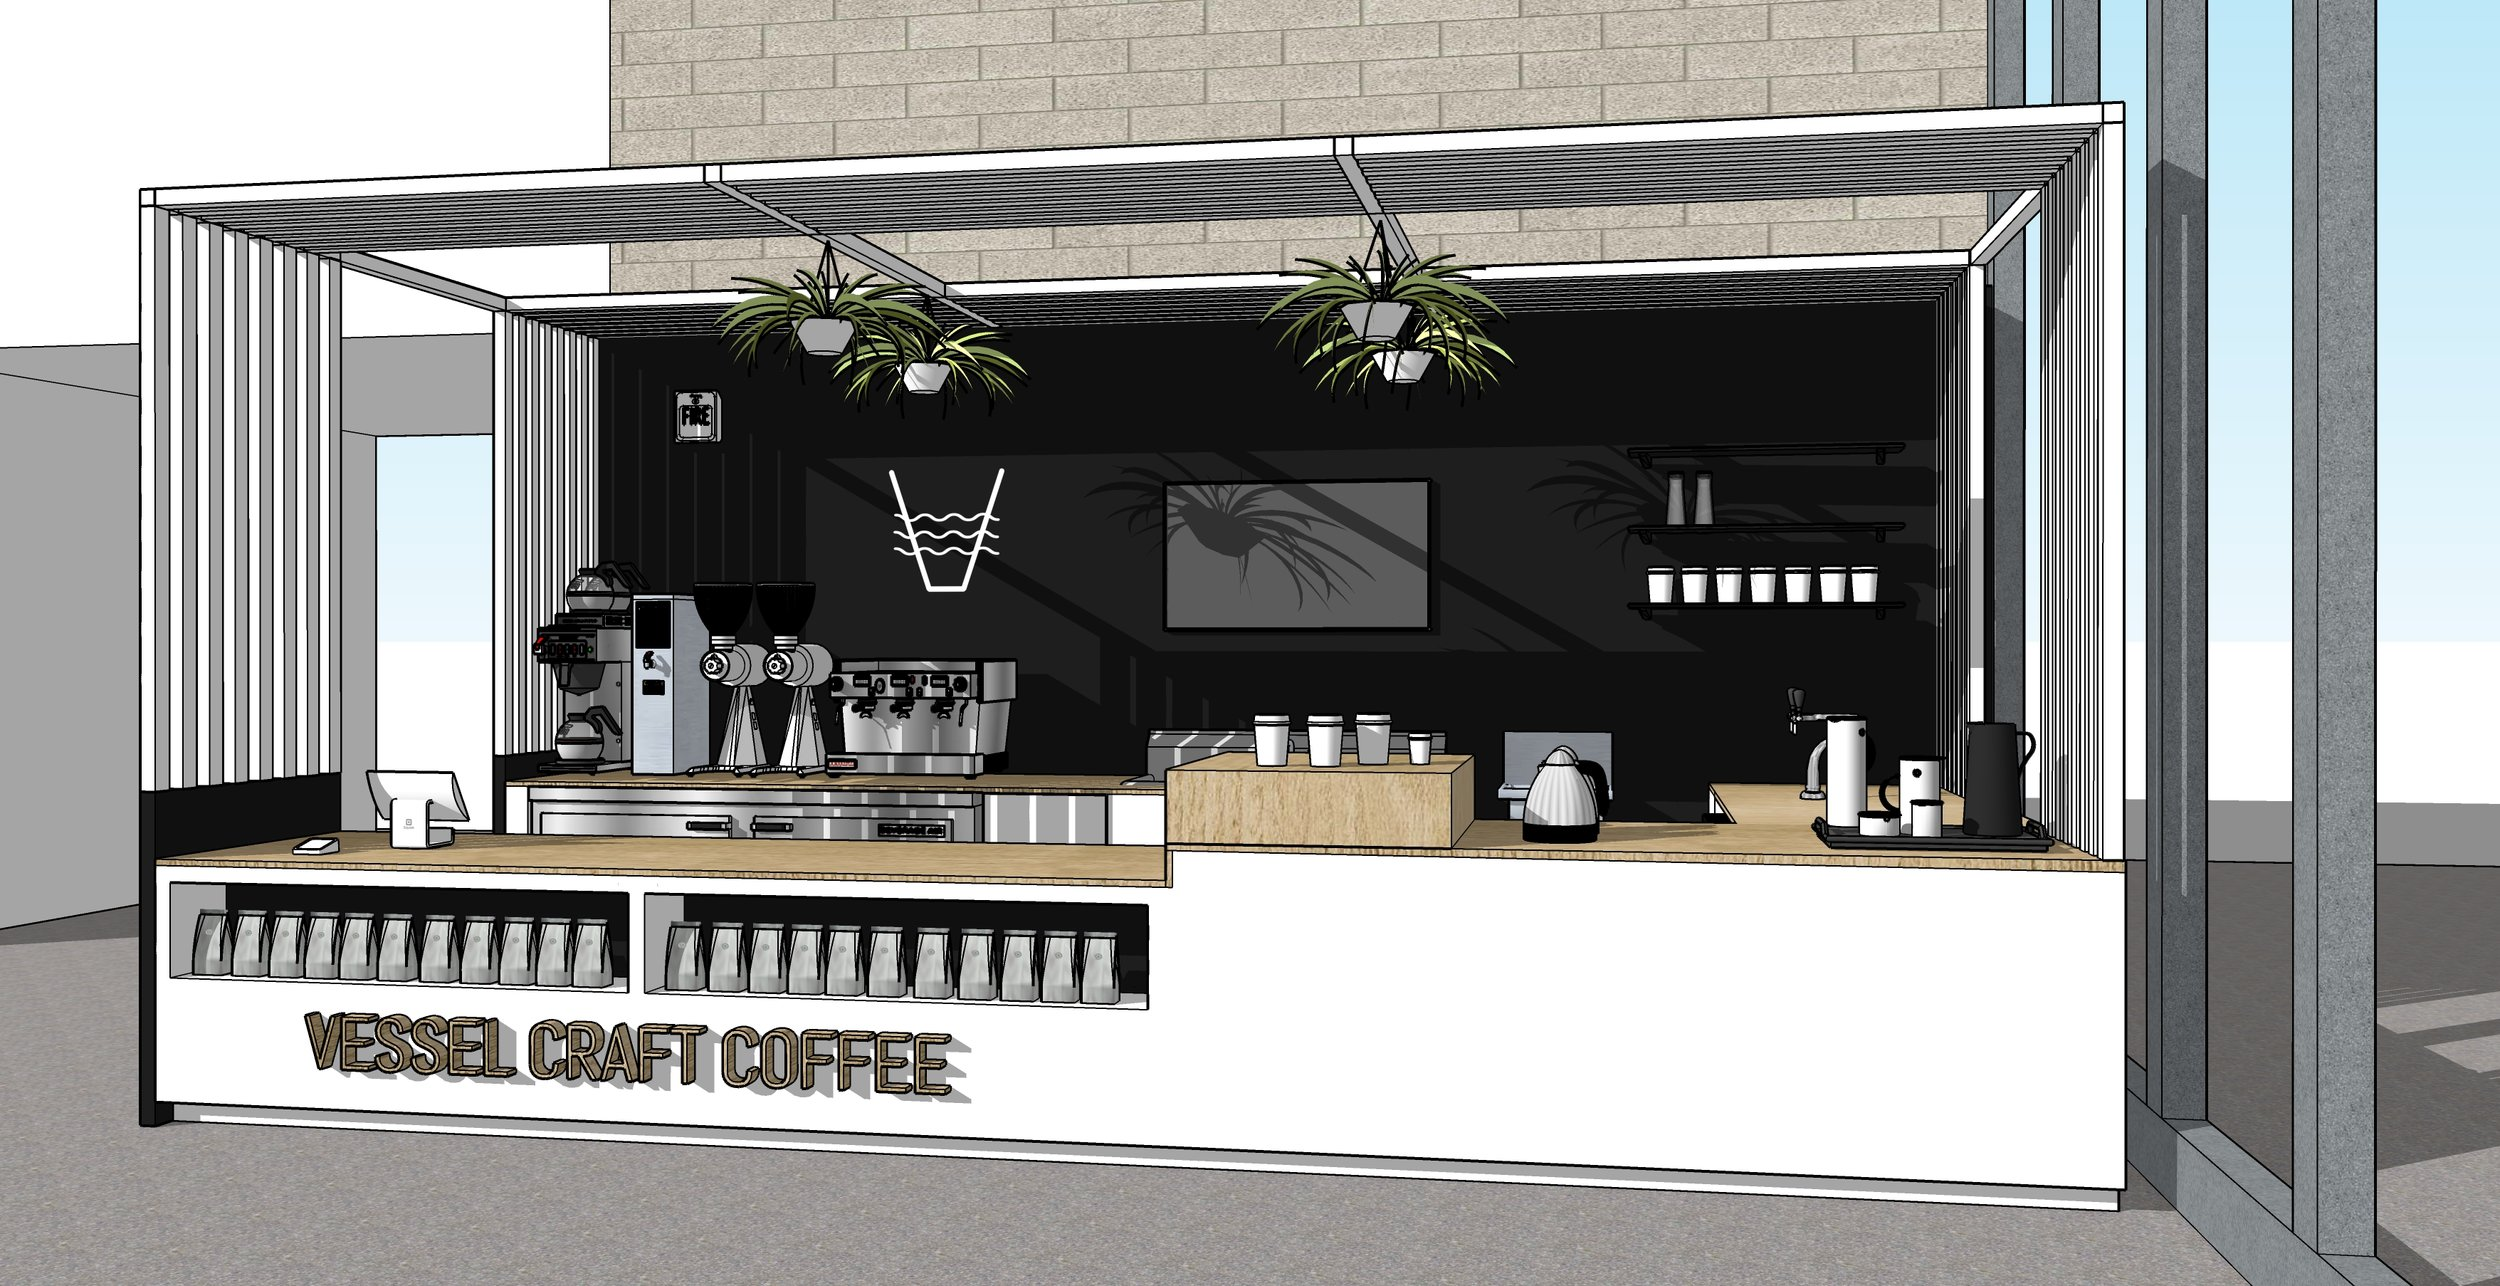 Conceptual interior design for Vessel Craft Coffee's Norfolk City Hall location © 2018